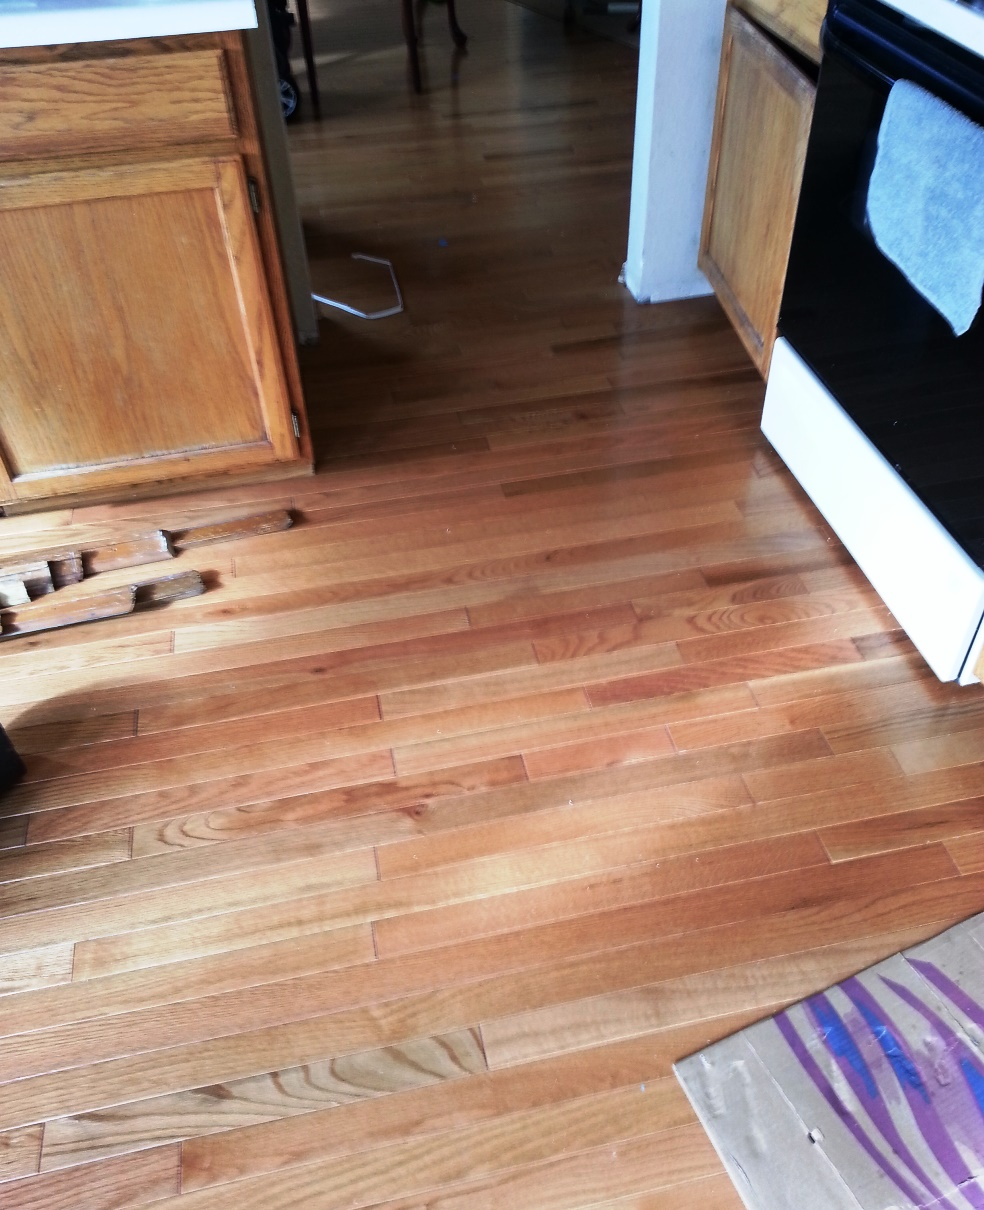 Wholesale hardwood flooring flooring 100 wholesale for Hardwood floors wholesale